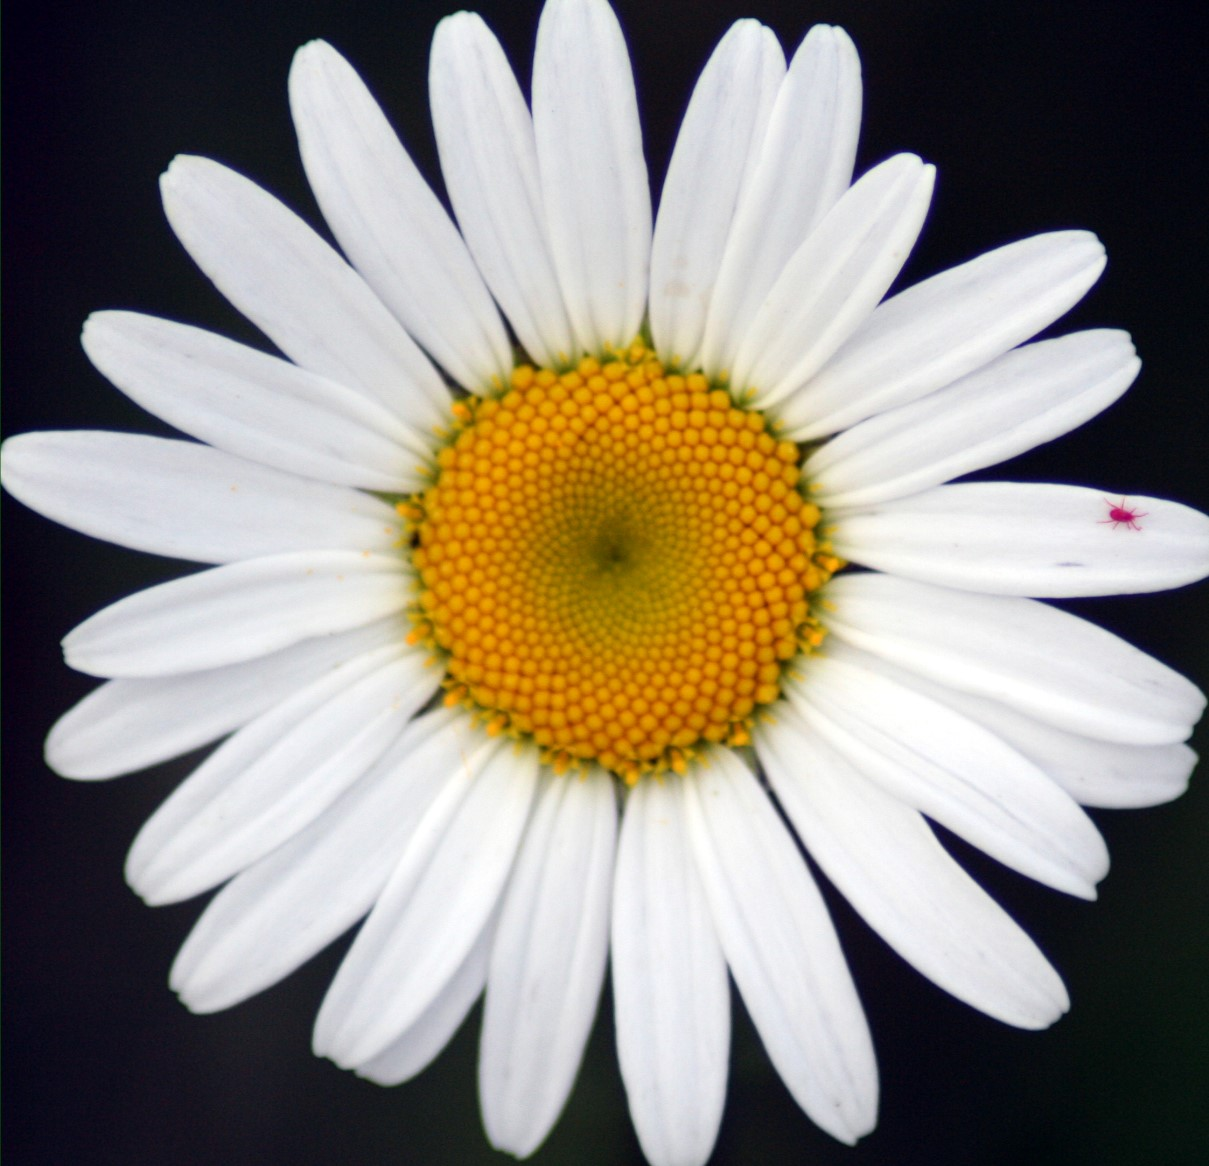 white daisy flower picture yellow daisy flower: flowers-picture.blogspot.com/2011/08/daisy-flower-4.html